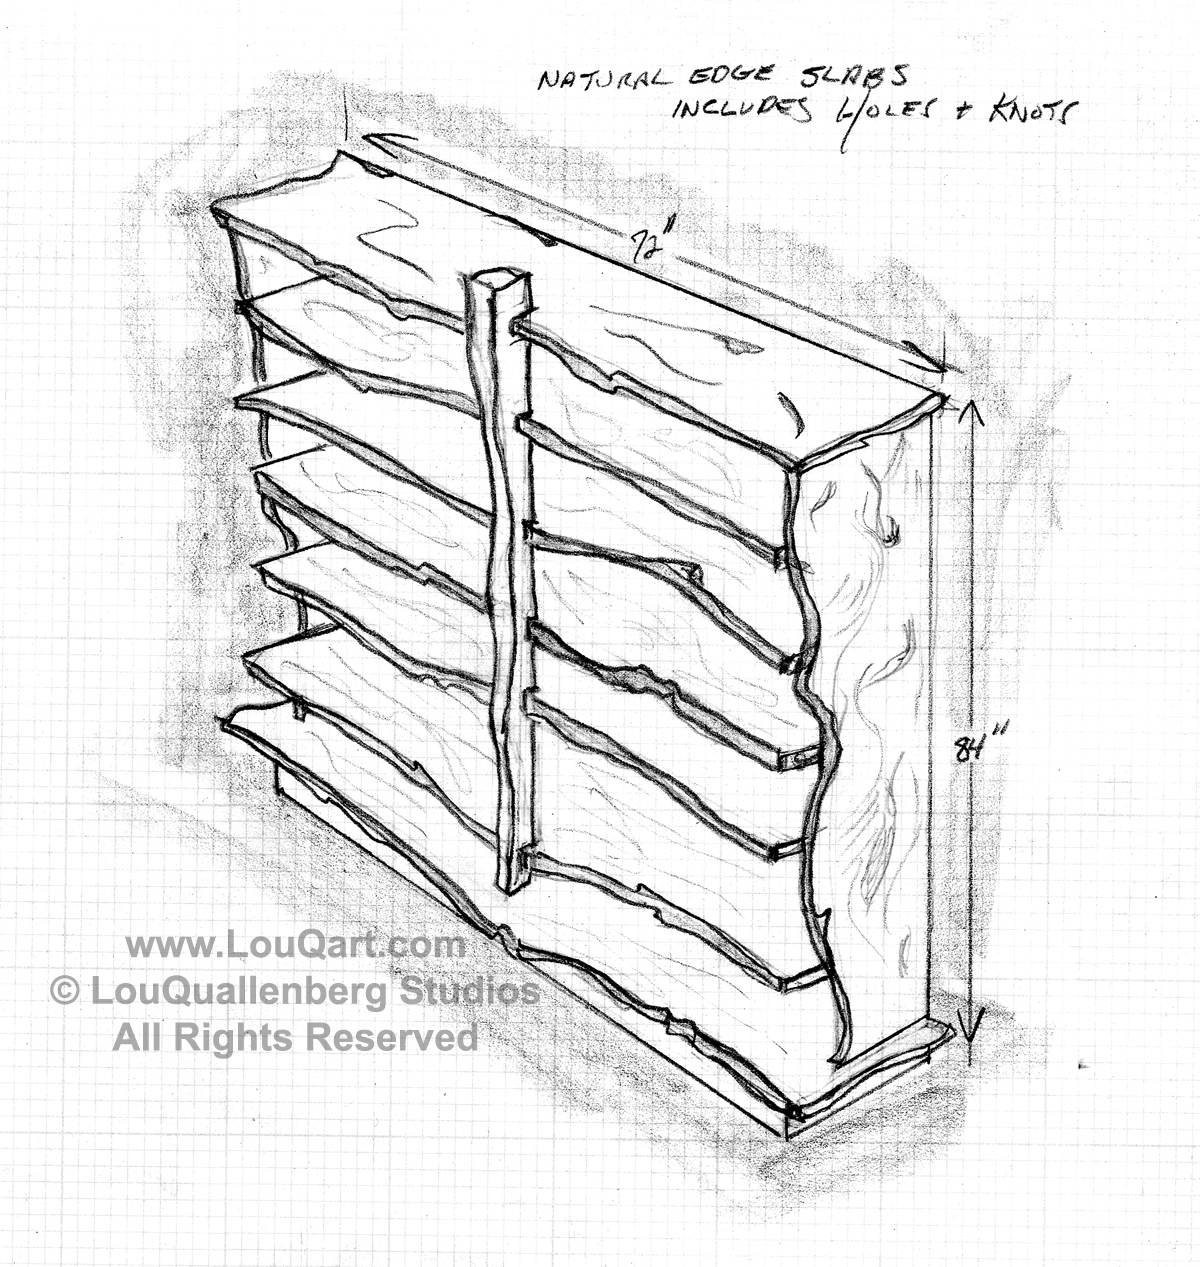 Lou Quallenbergs Client Sketch Of Mesquite Bookshelf